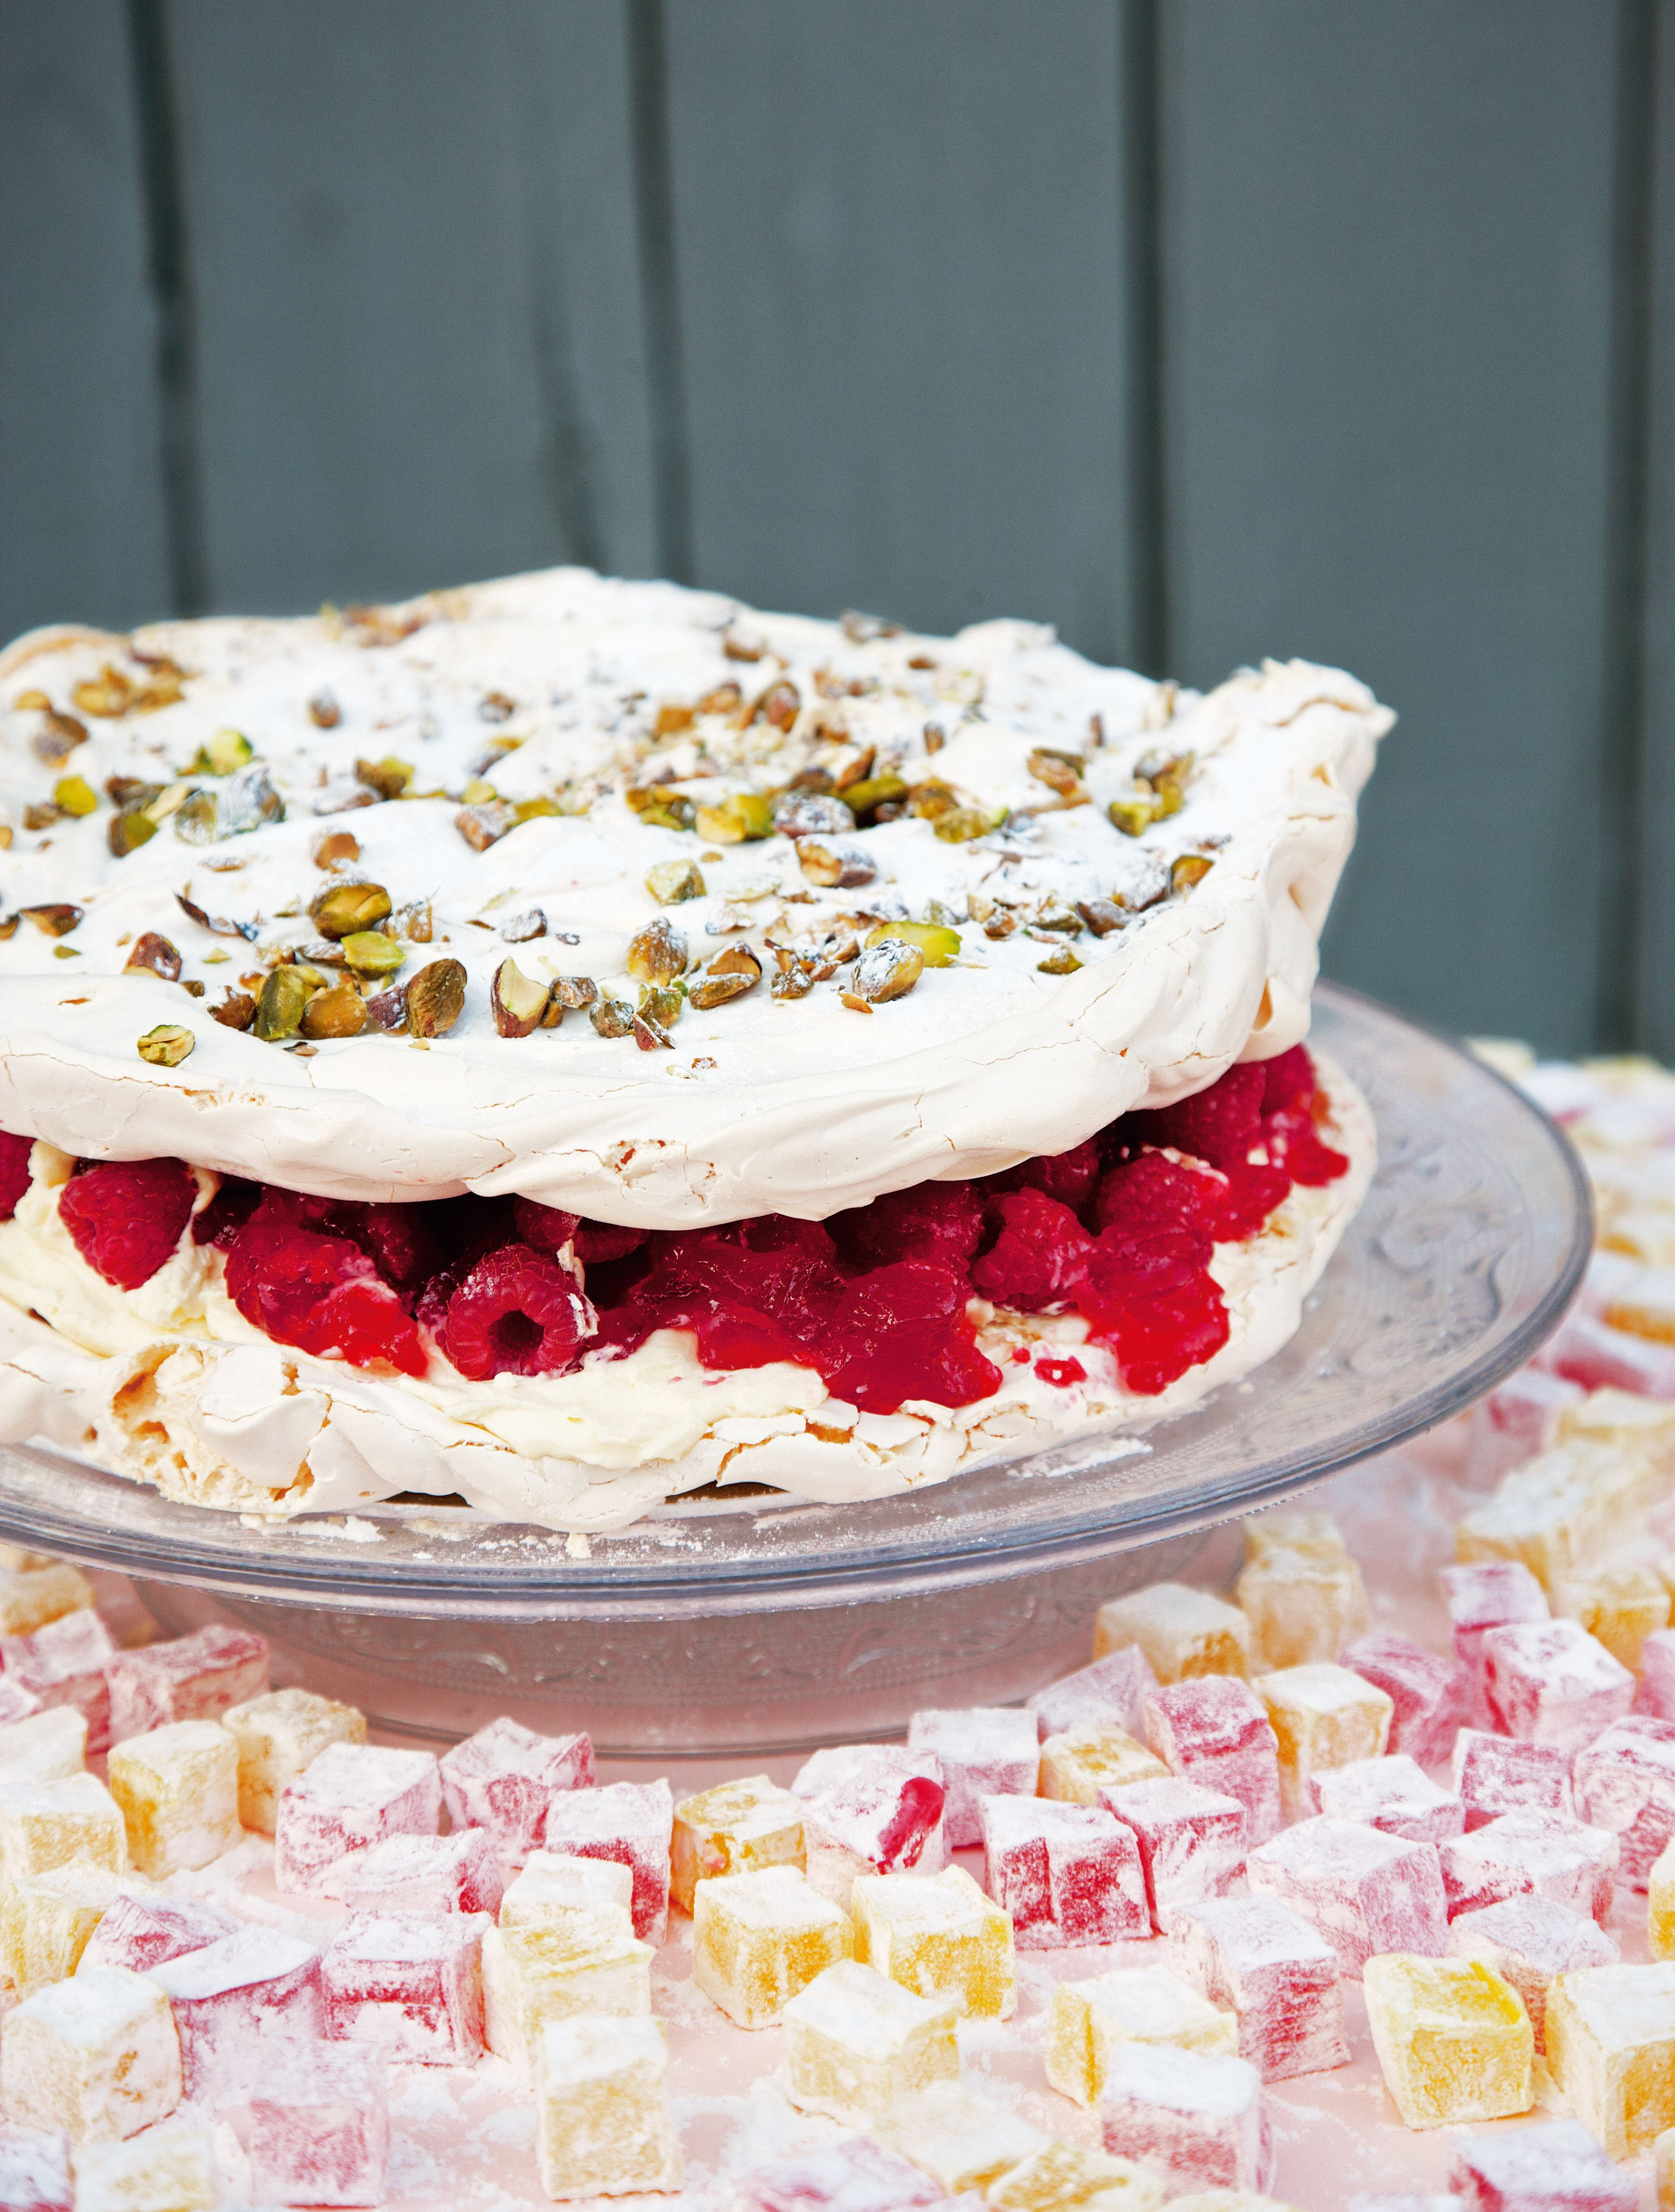 Turkish delight meringue